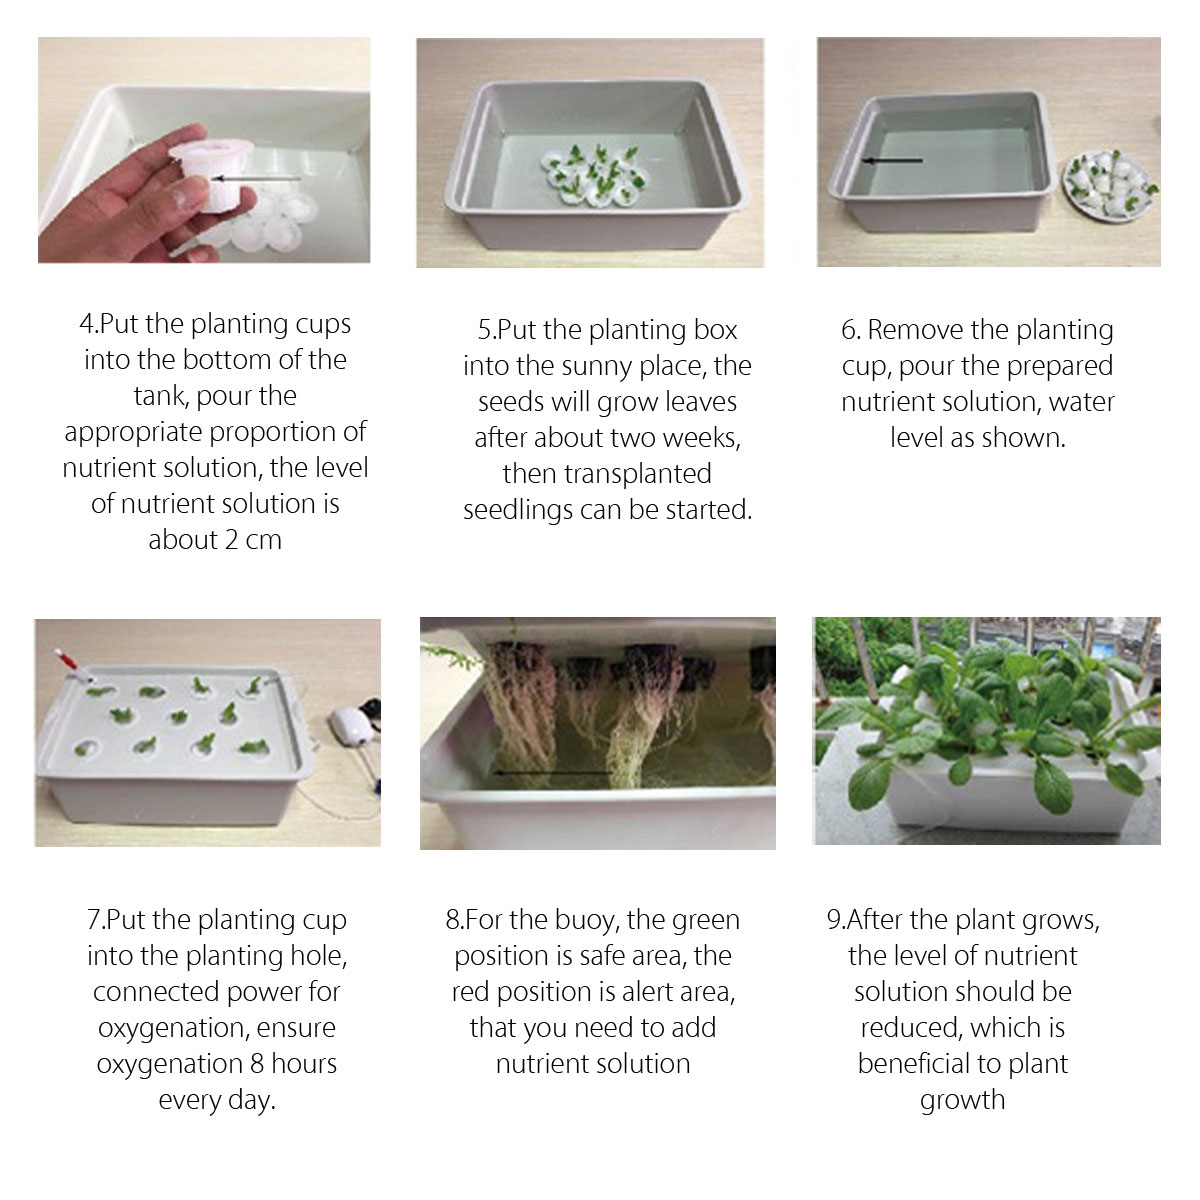 220V 24 Holes Hydroponic System Kit Indoor Aerobic Soilless Cultivation Water Planting Grow Box